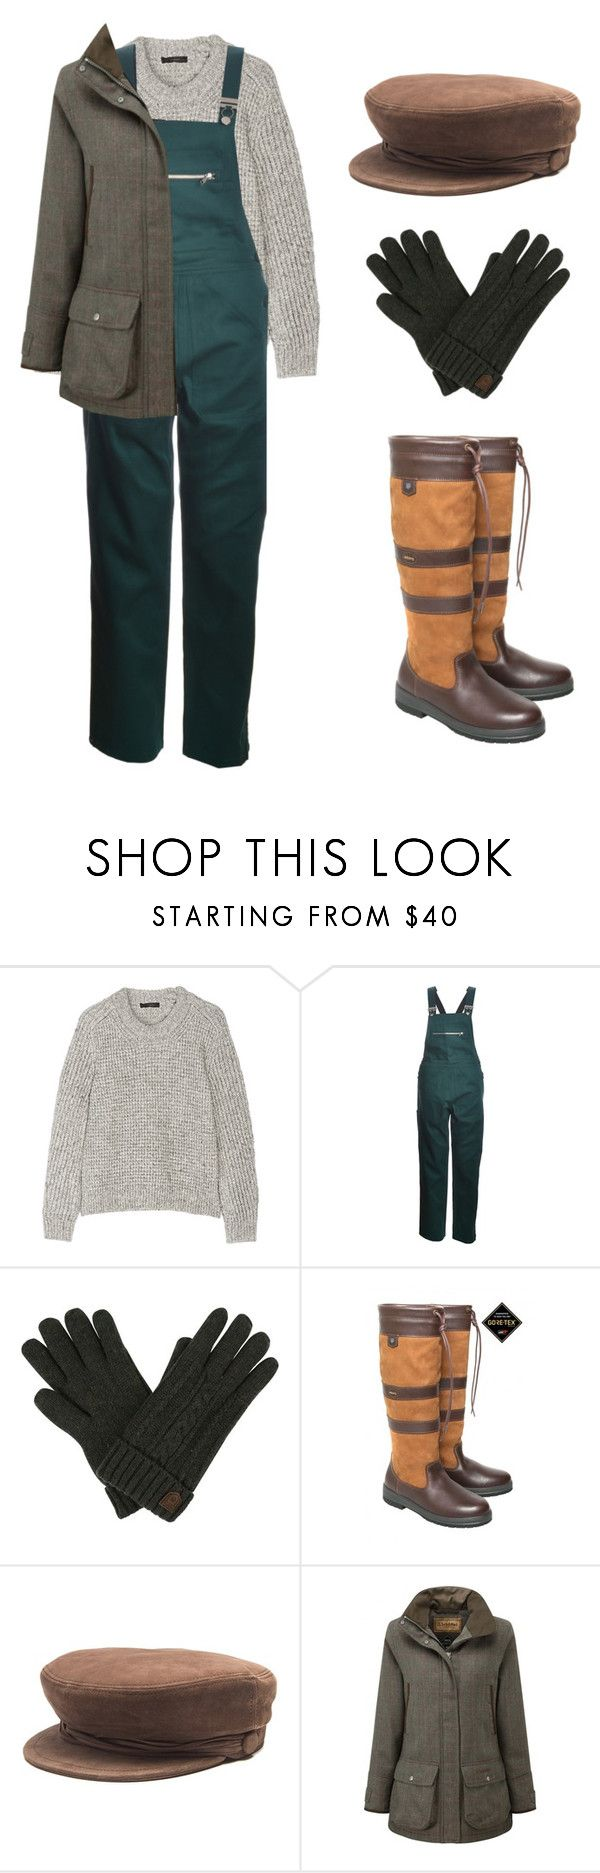 """farmgirl"" by needlework ❤ liked on Polyvore featuring Belstaff, DUBARRY and Maison Michel"